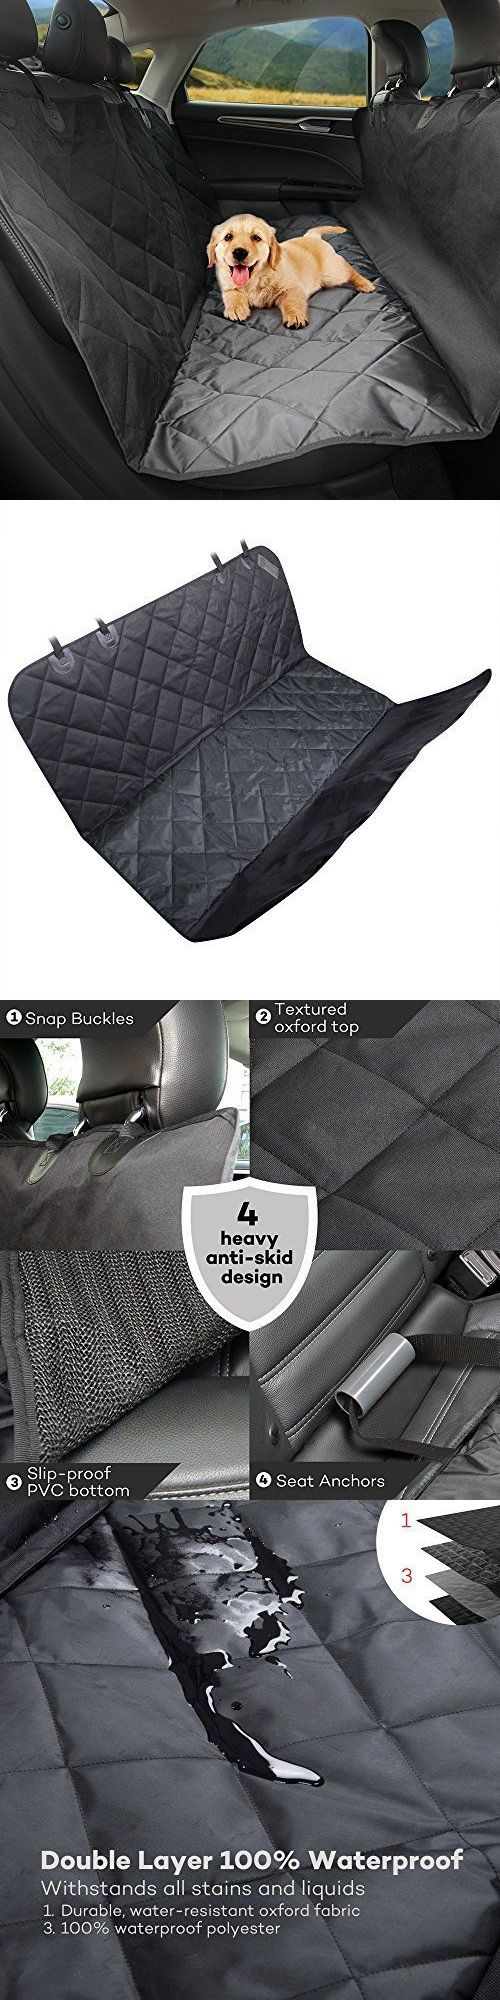 Car Seat Covers 117426: Dog Backseat Car Seat Suv Cover Waterproof Protector Travel Rear Pet Hammock Mat BUY IT NOW ONLY: $32.13